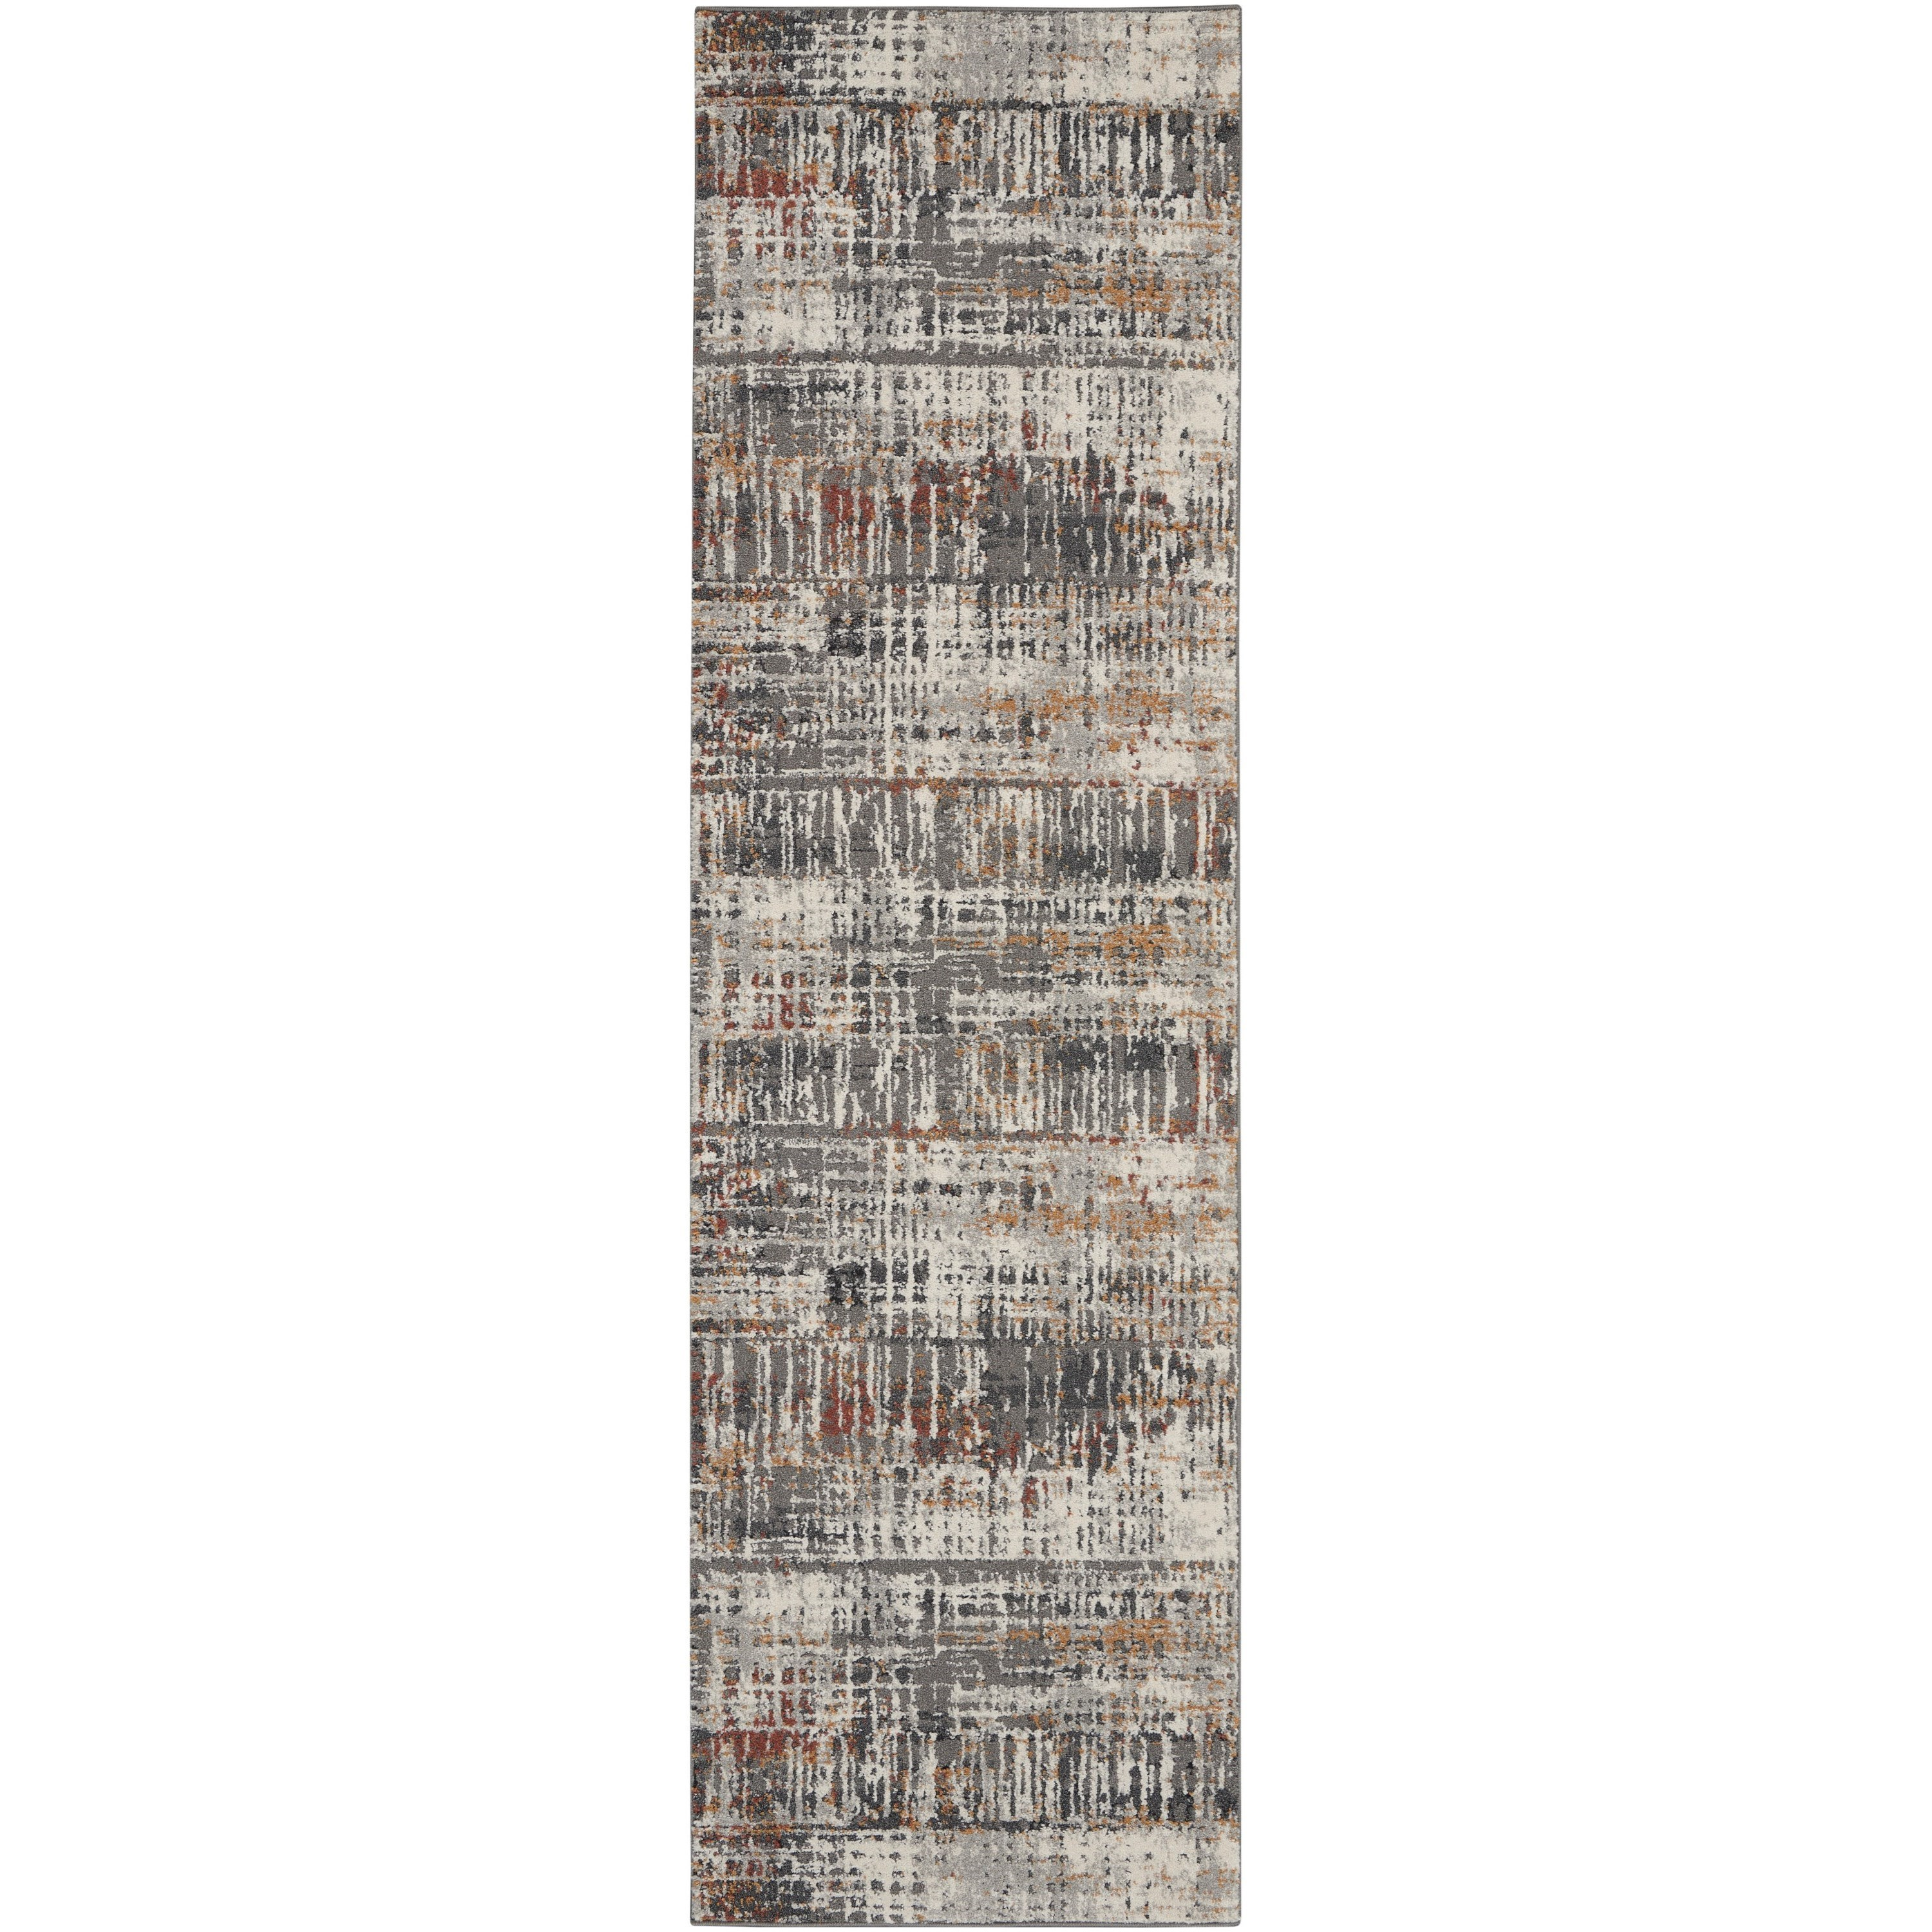 Tangra 2020 8' Runner Rug by Nourison at Home Collections Furniture